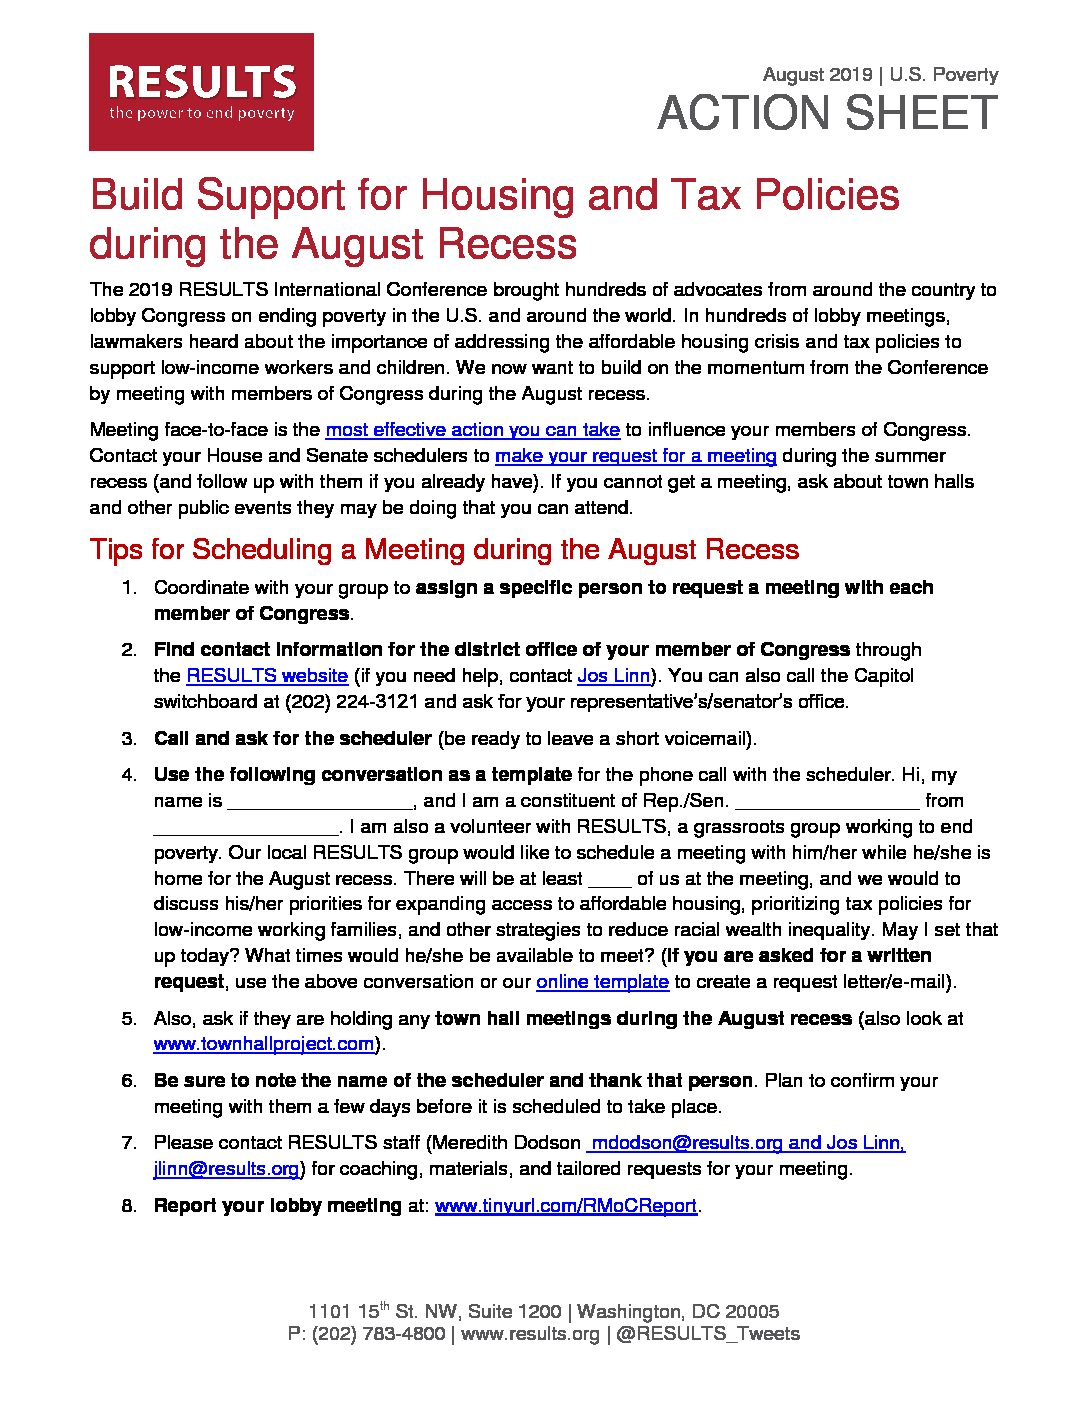 August 2019 U.S. Poverty Action Build Support For Housing And Tax Credits During The Recess